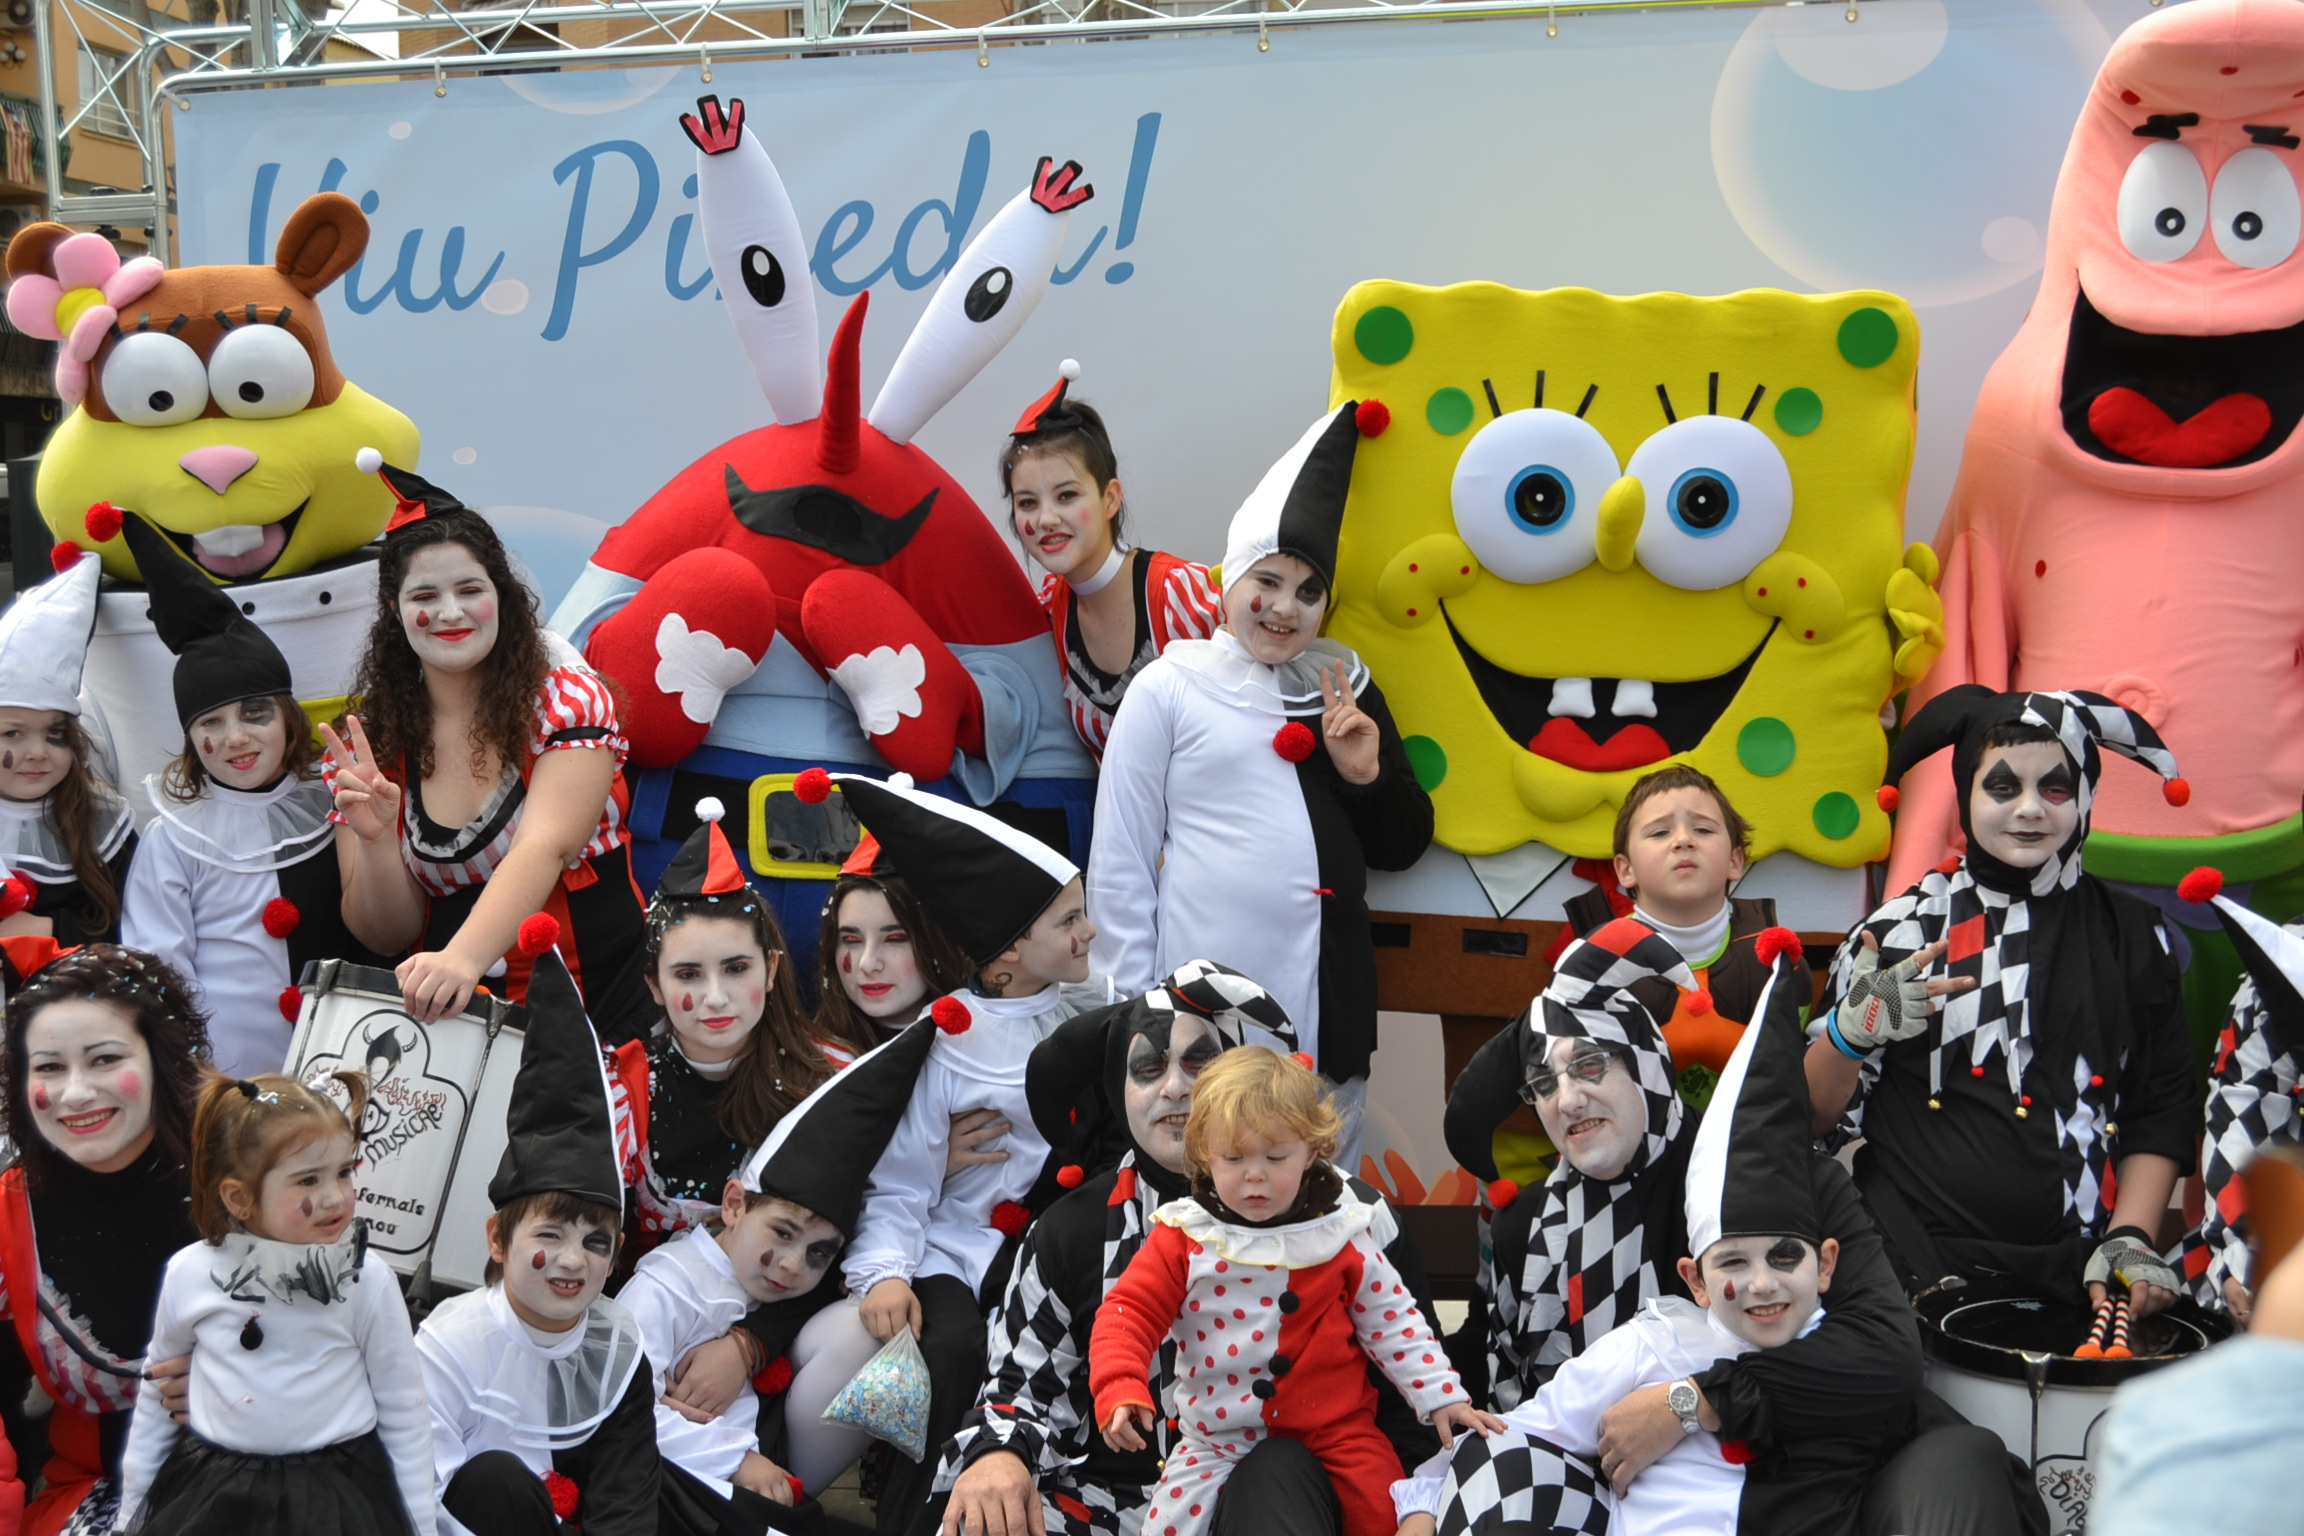 Carnaval a Pineda